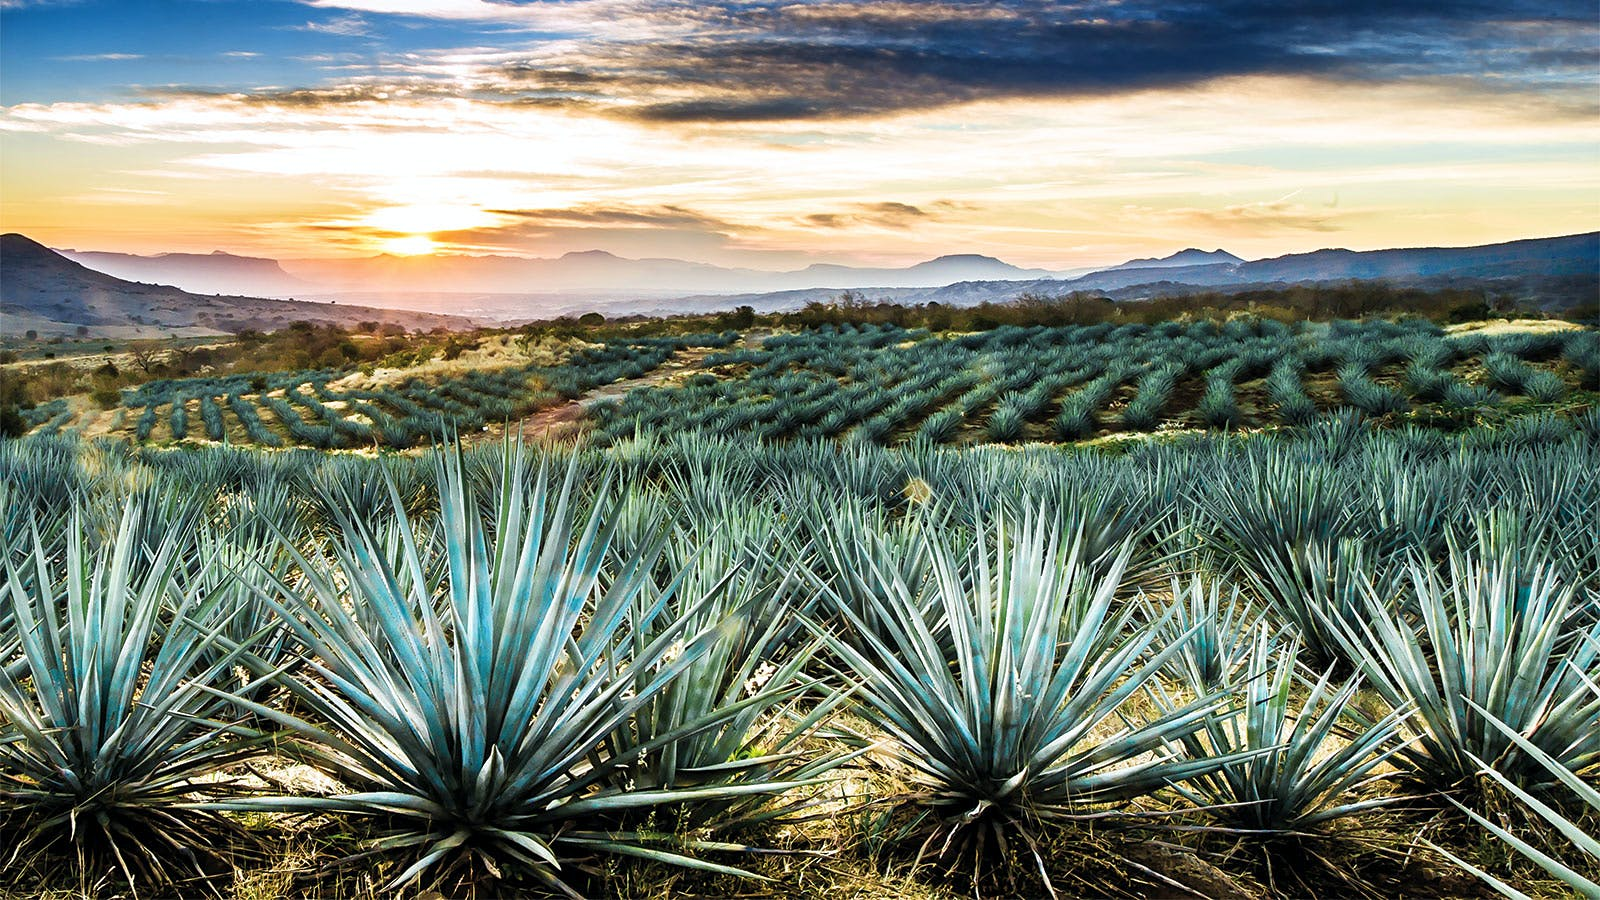 The Tequila Trail